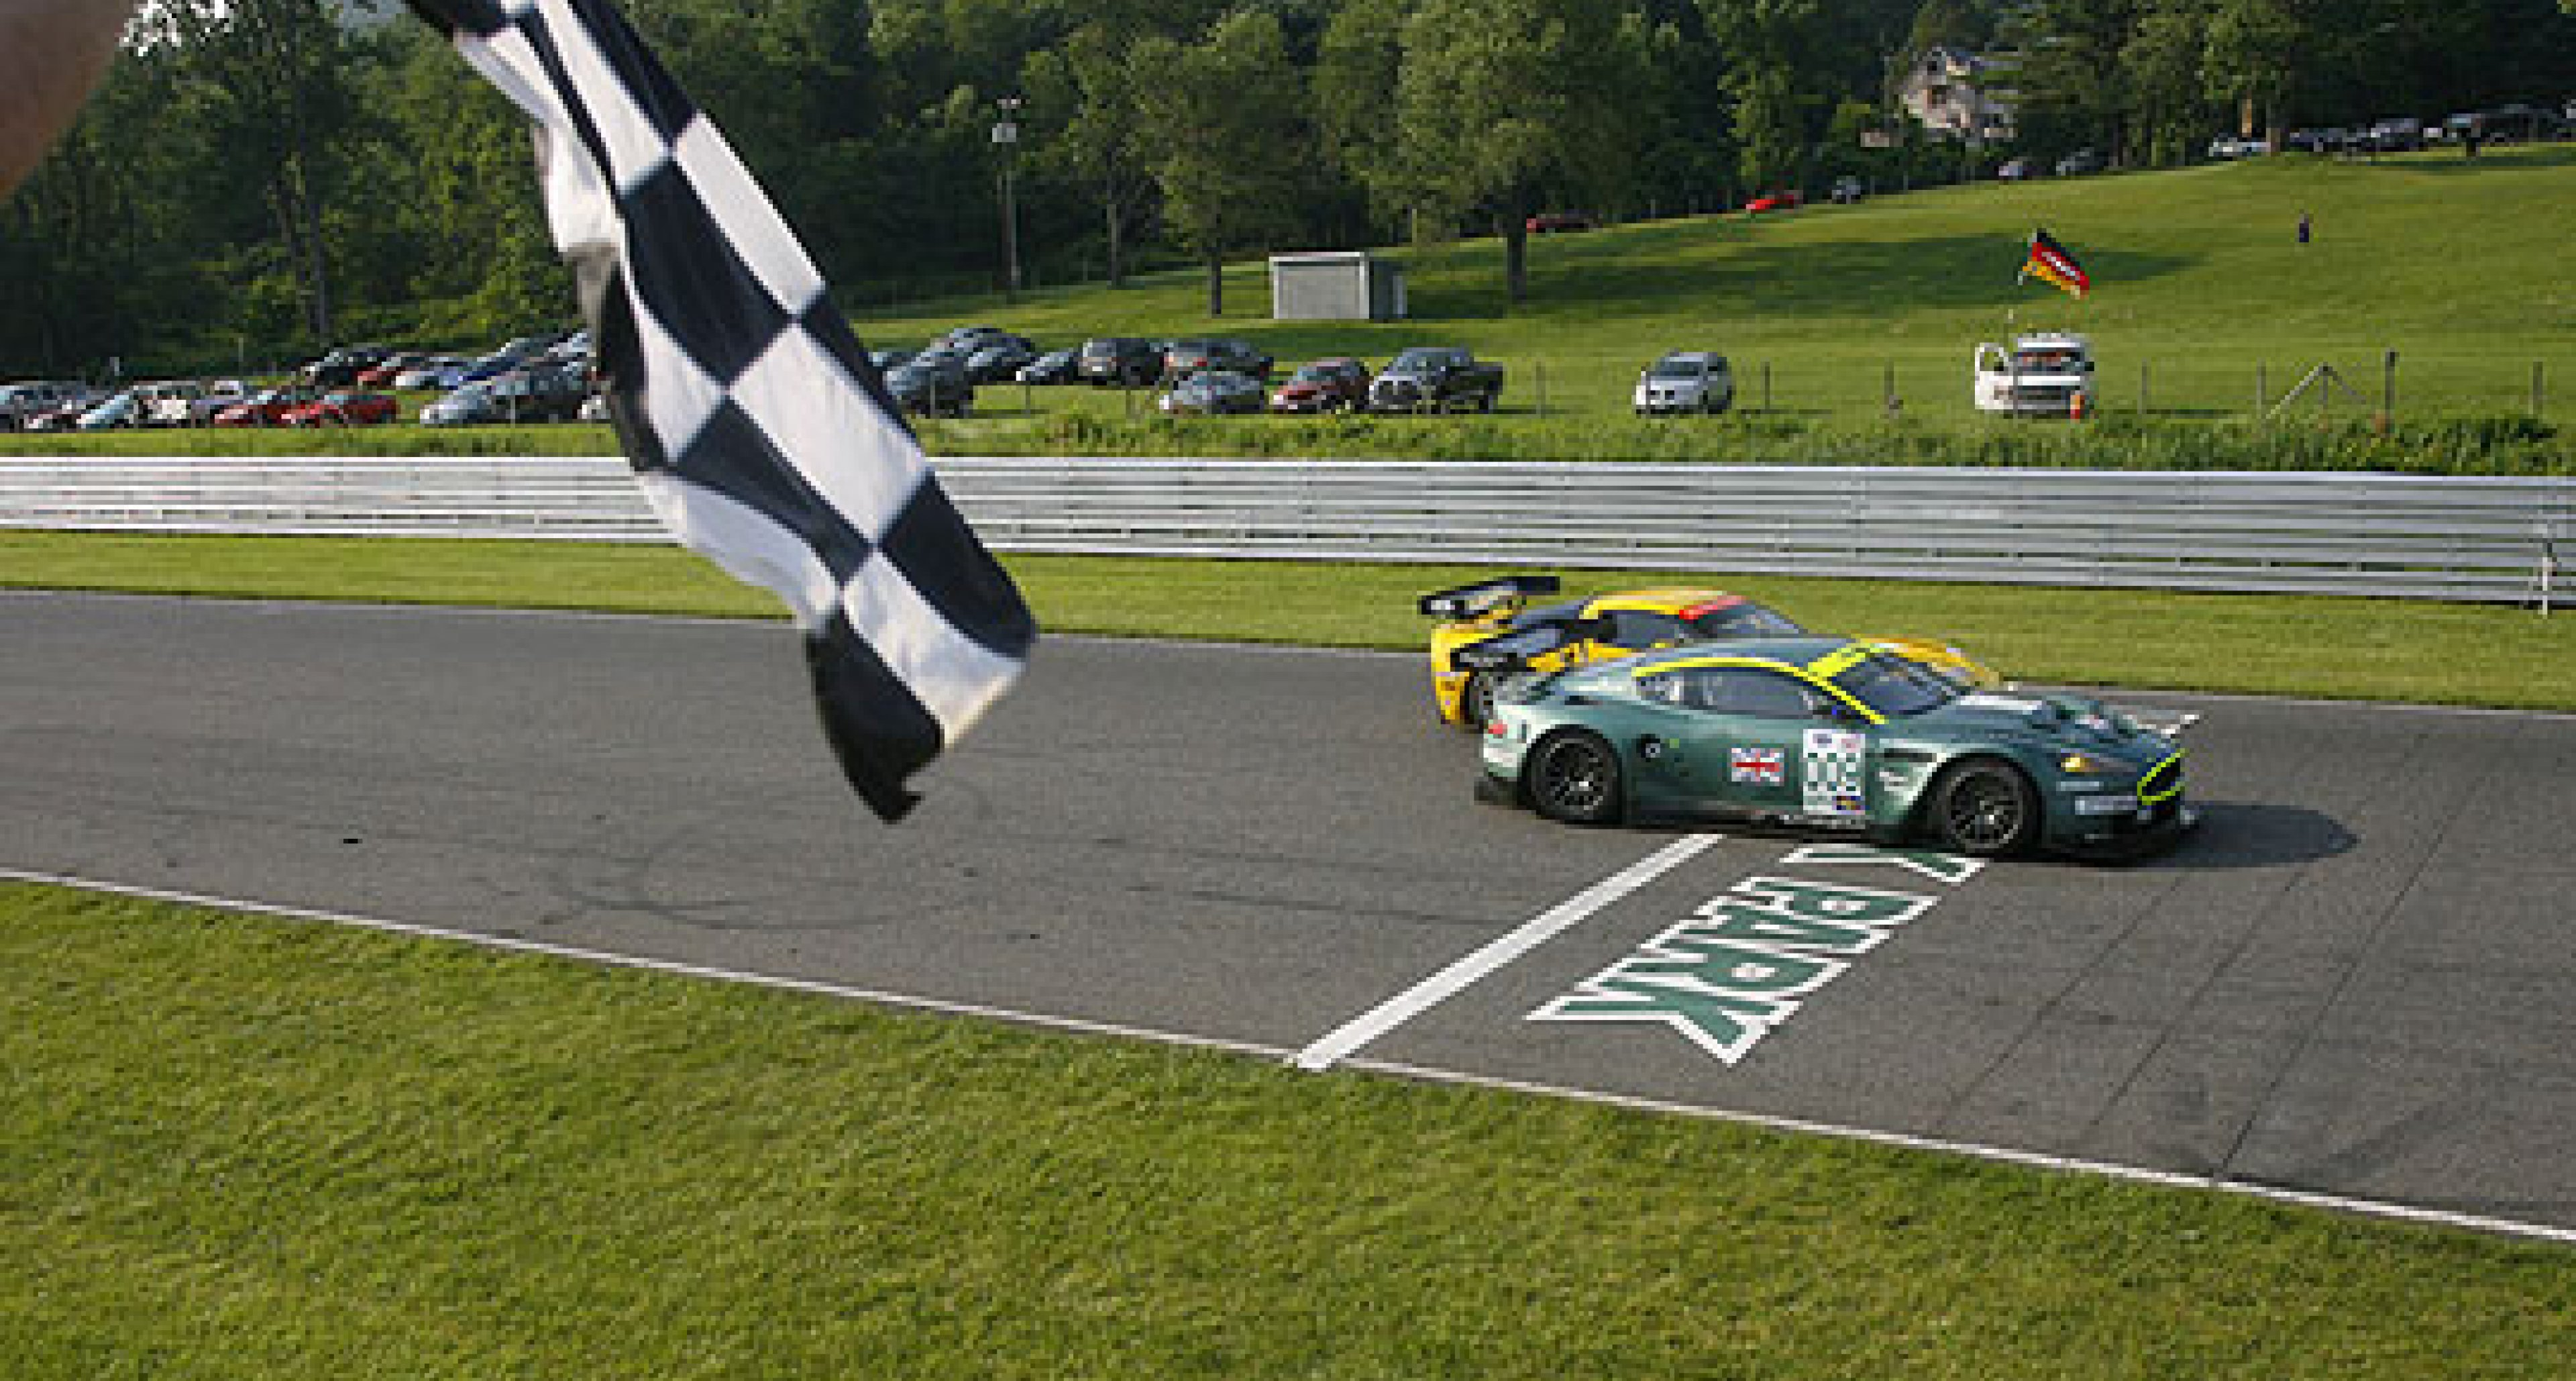 DBR9s victorious in the USA